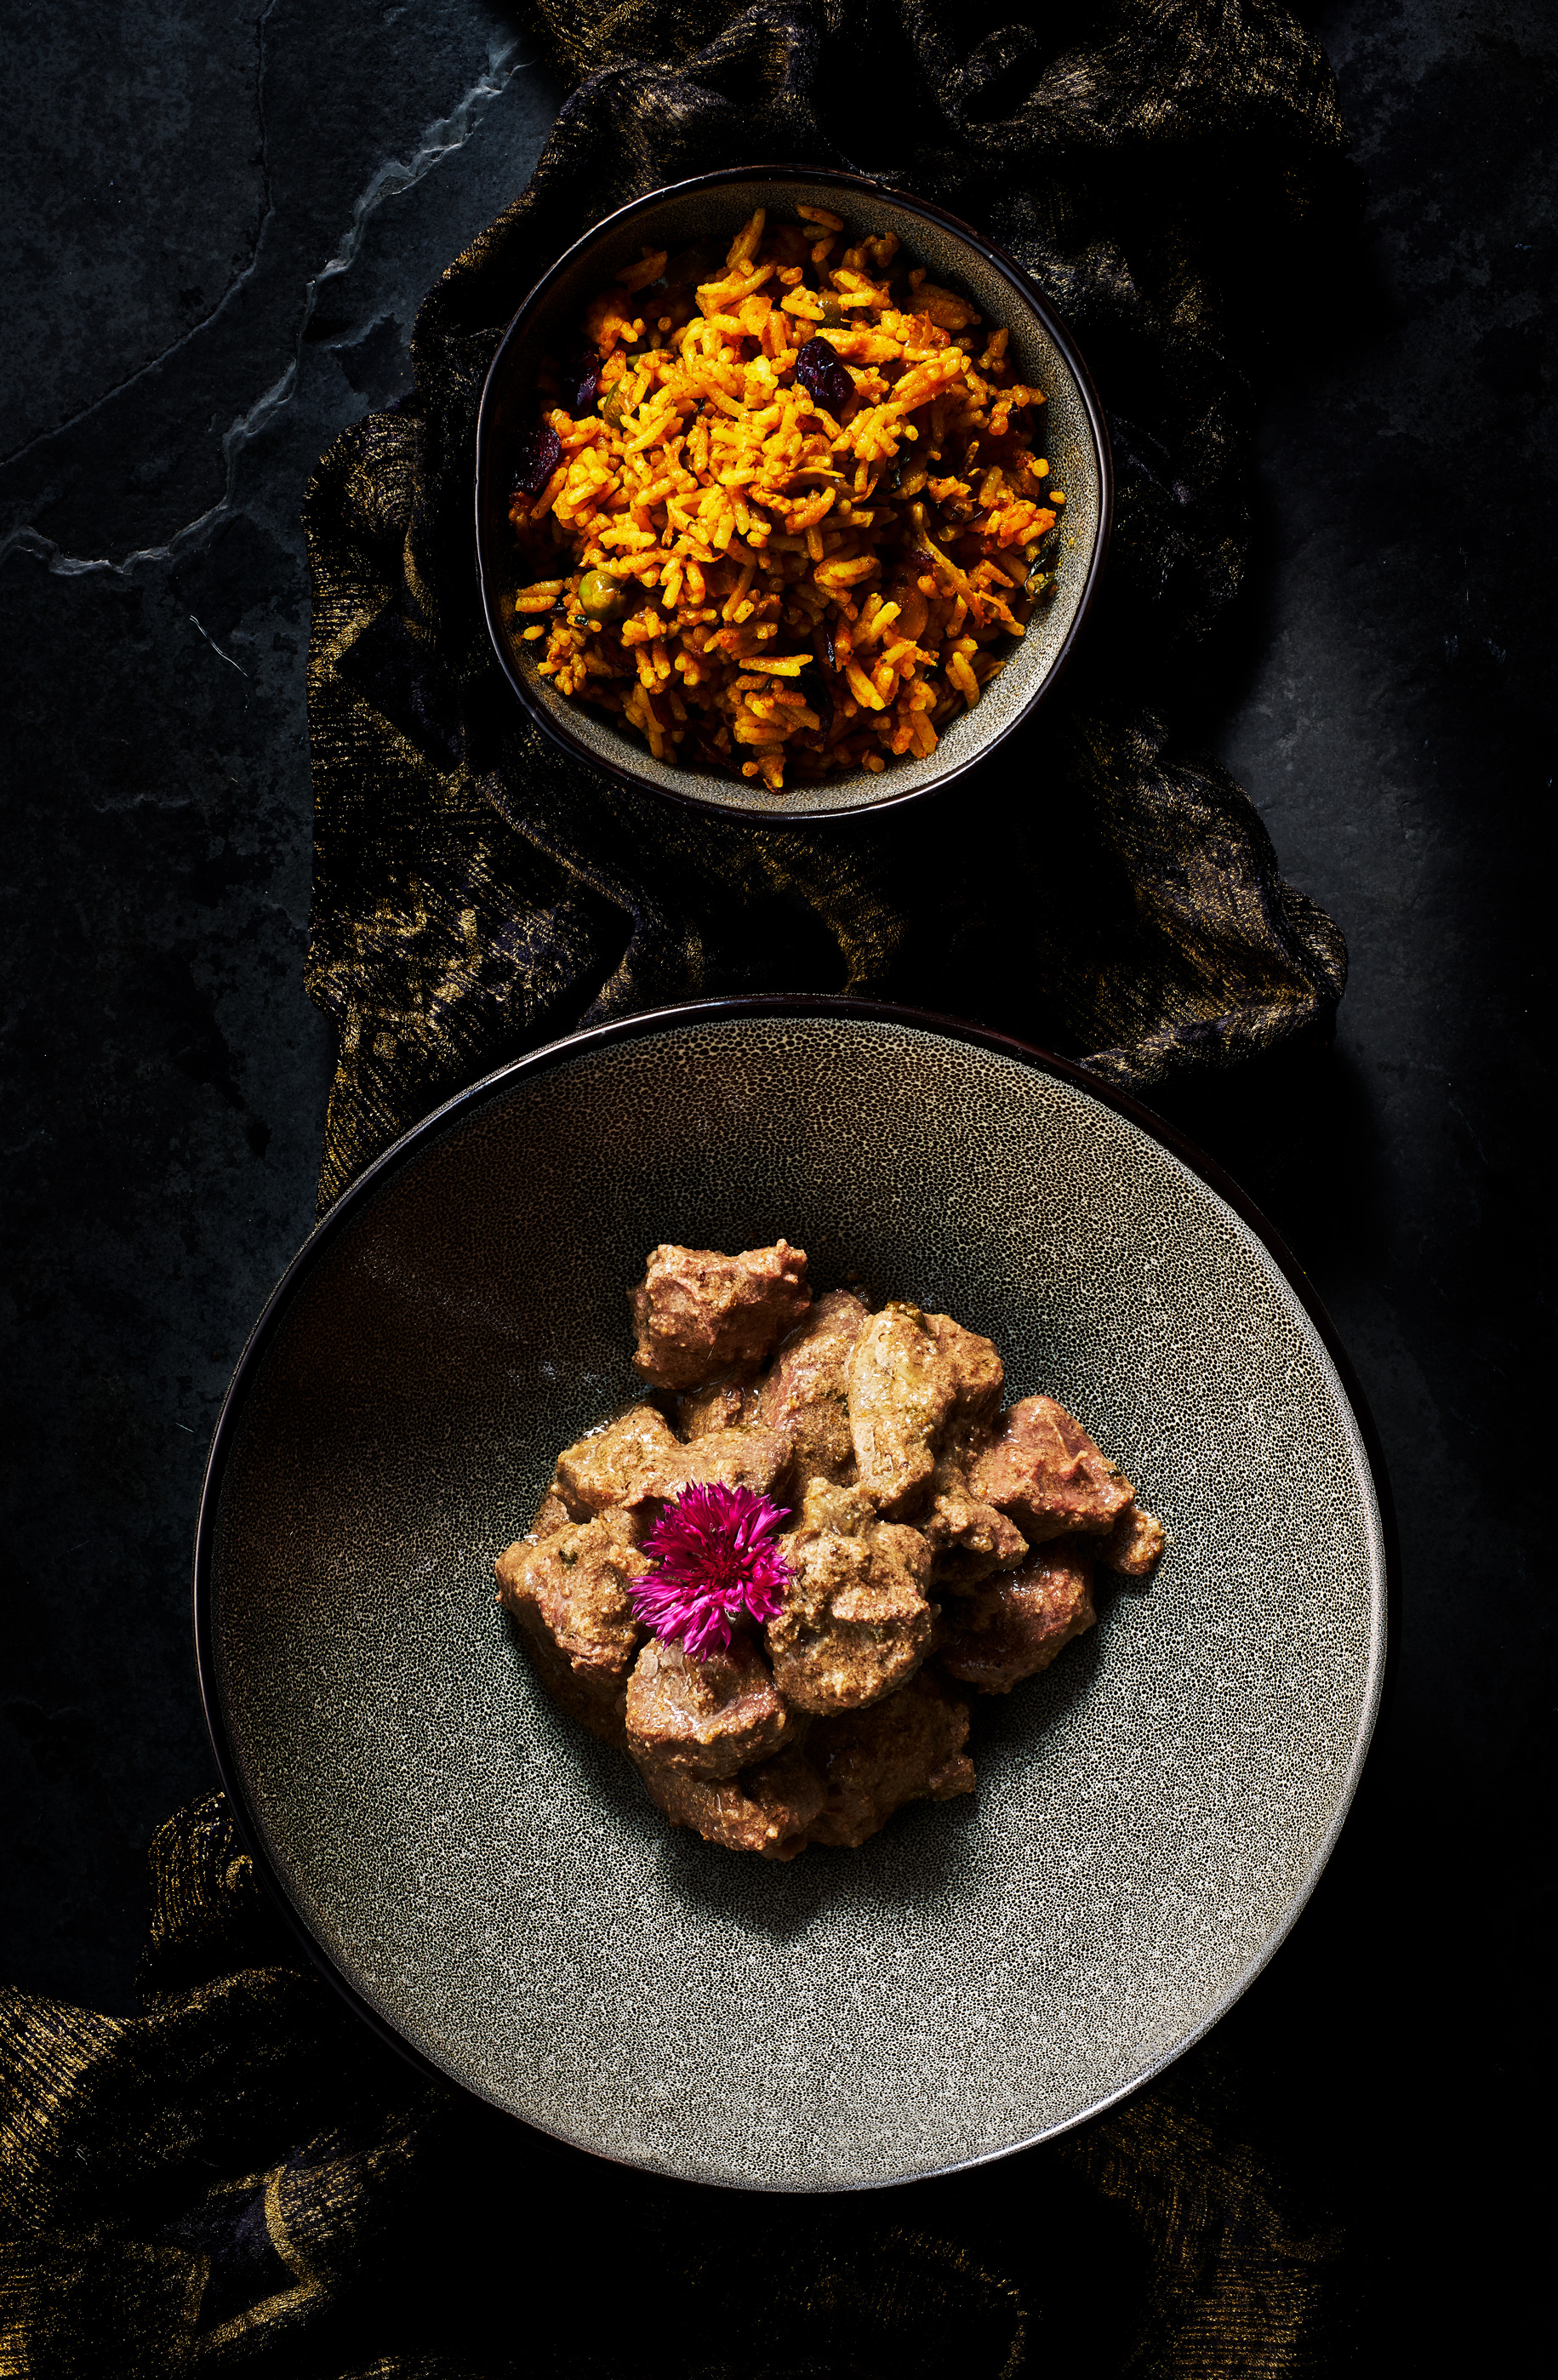 Venison curry by London food photographer, Michael Michaels